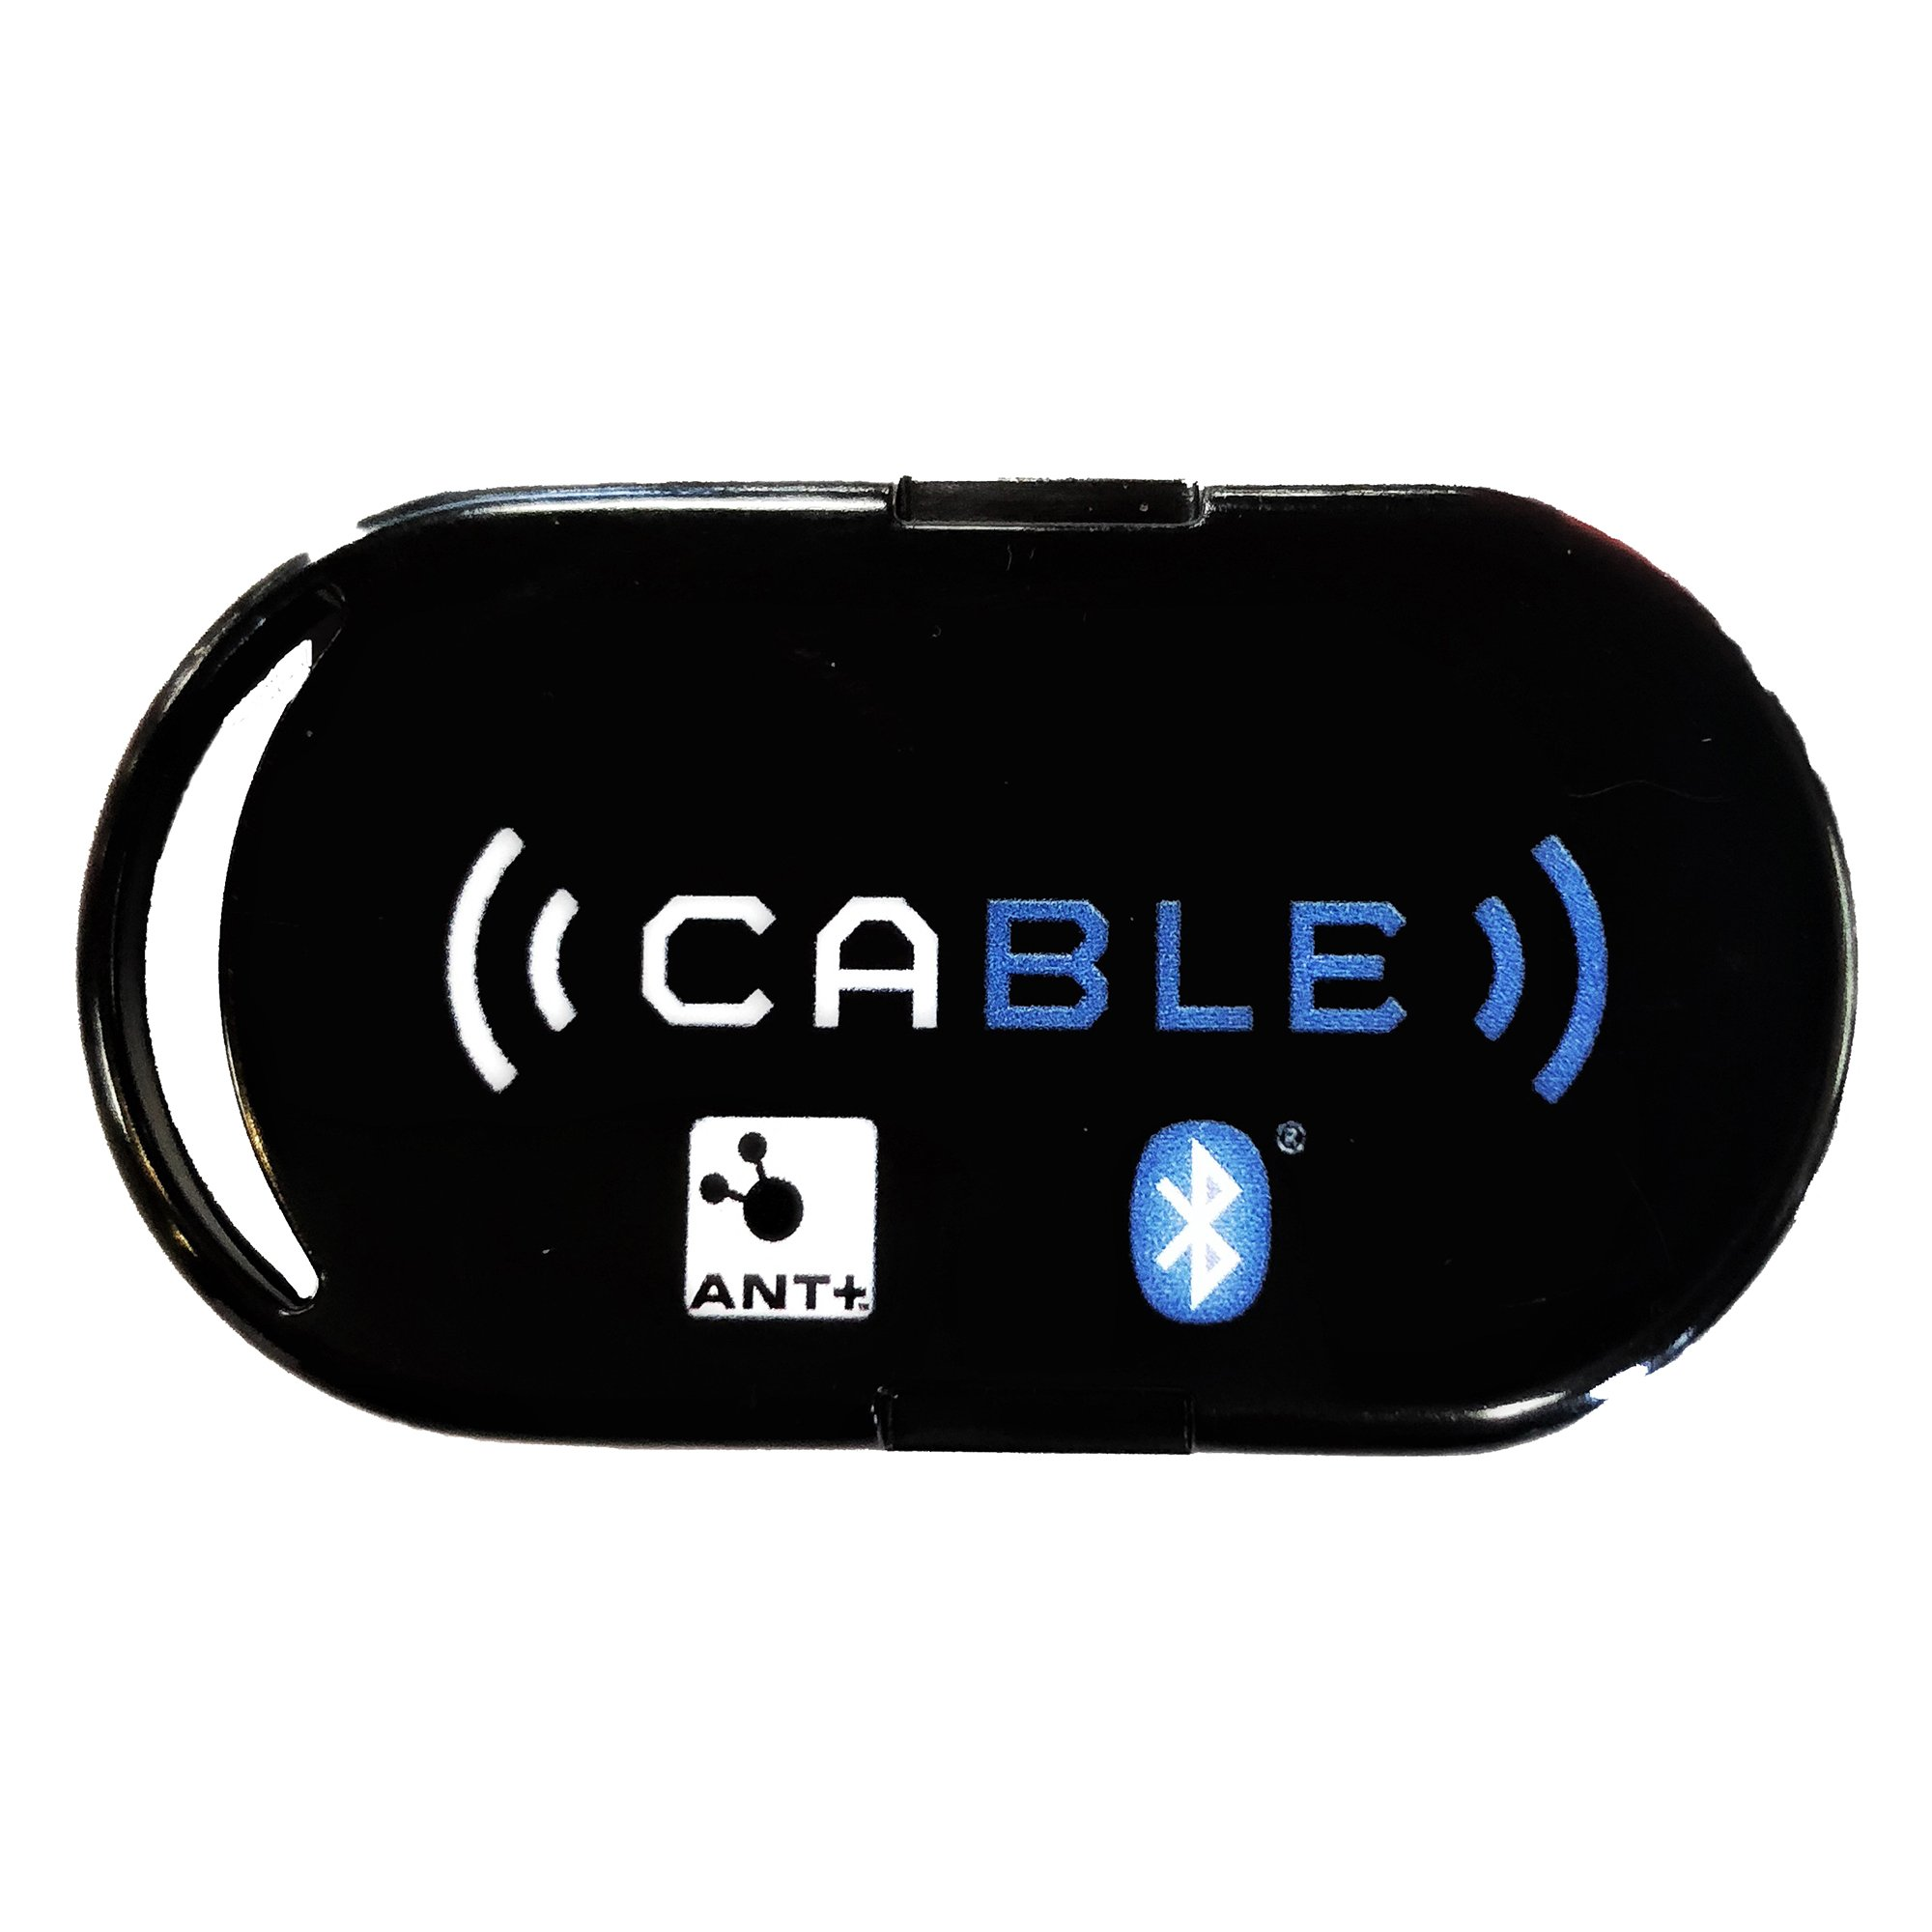 CABLE (Connect ANT+ to BLE) by North Pole Engineering